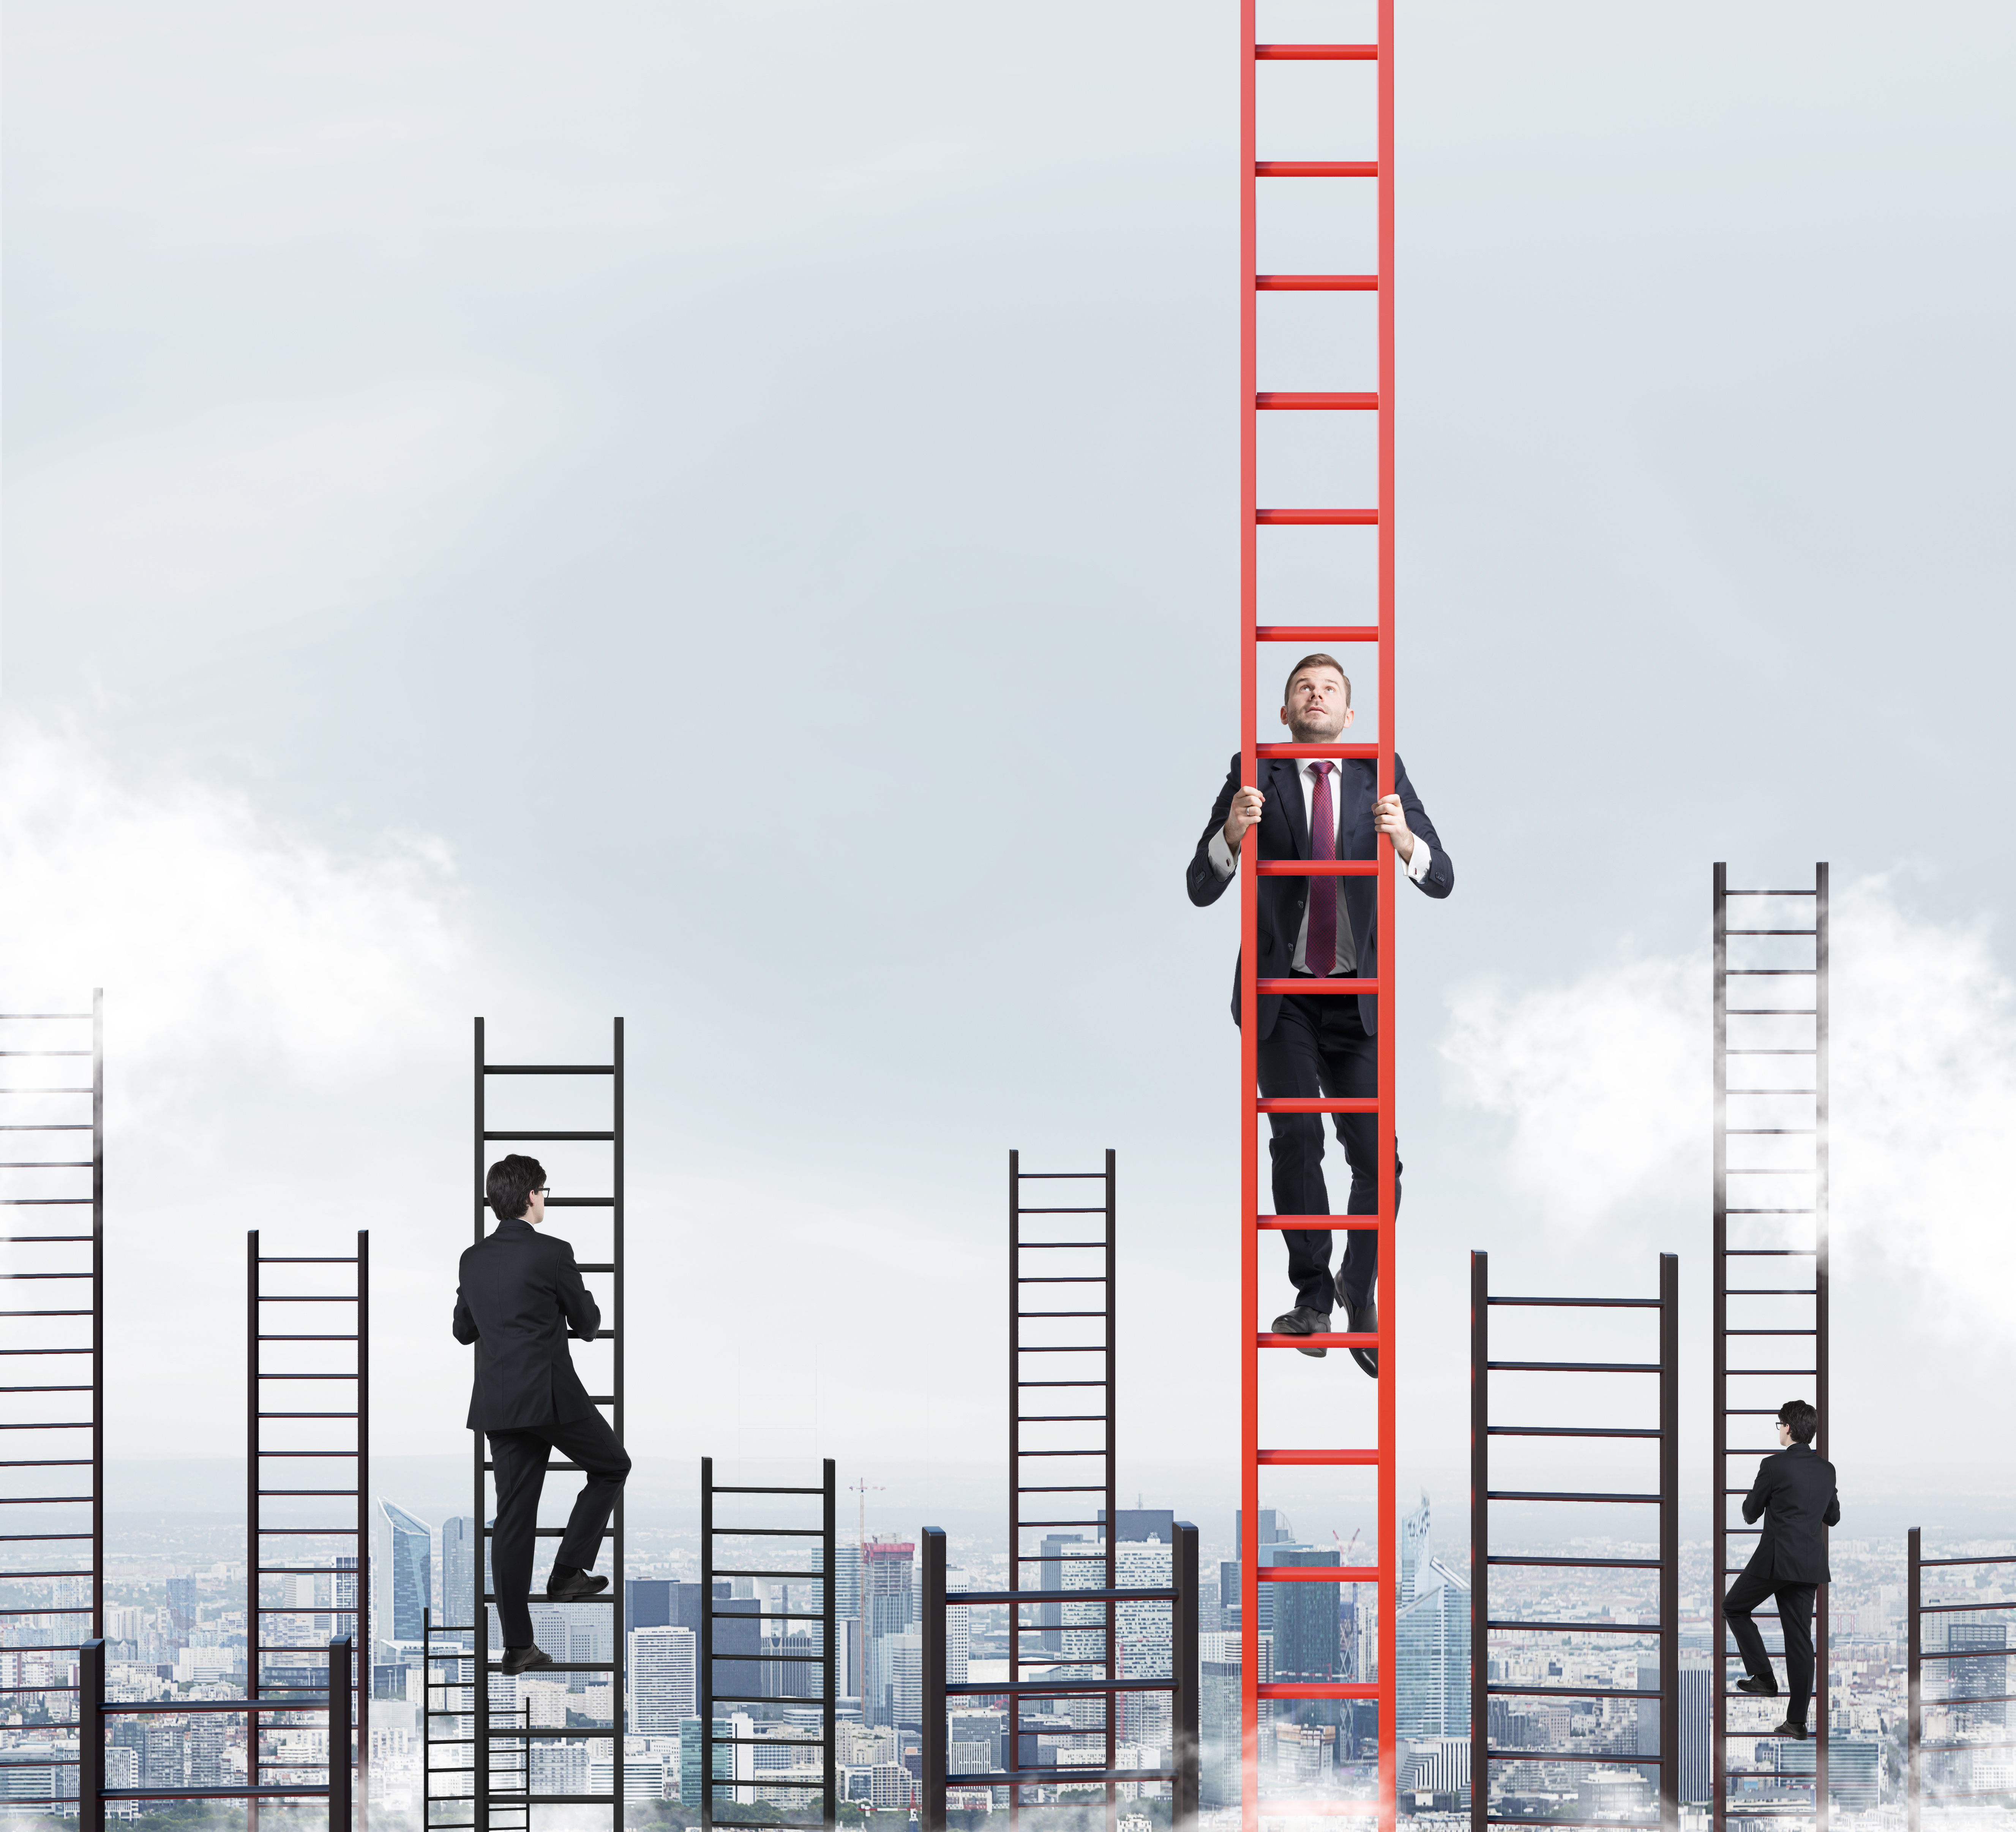 Create Brand Loyalty Through Work Culture - Men climbing up ladders